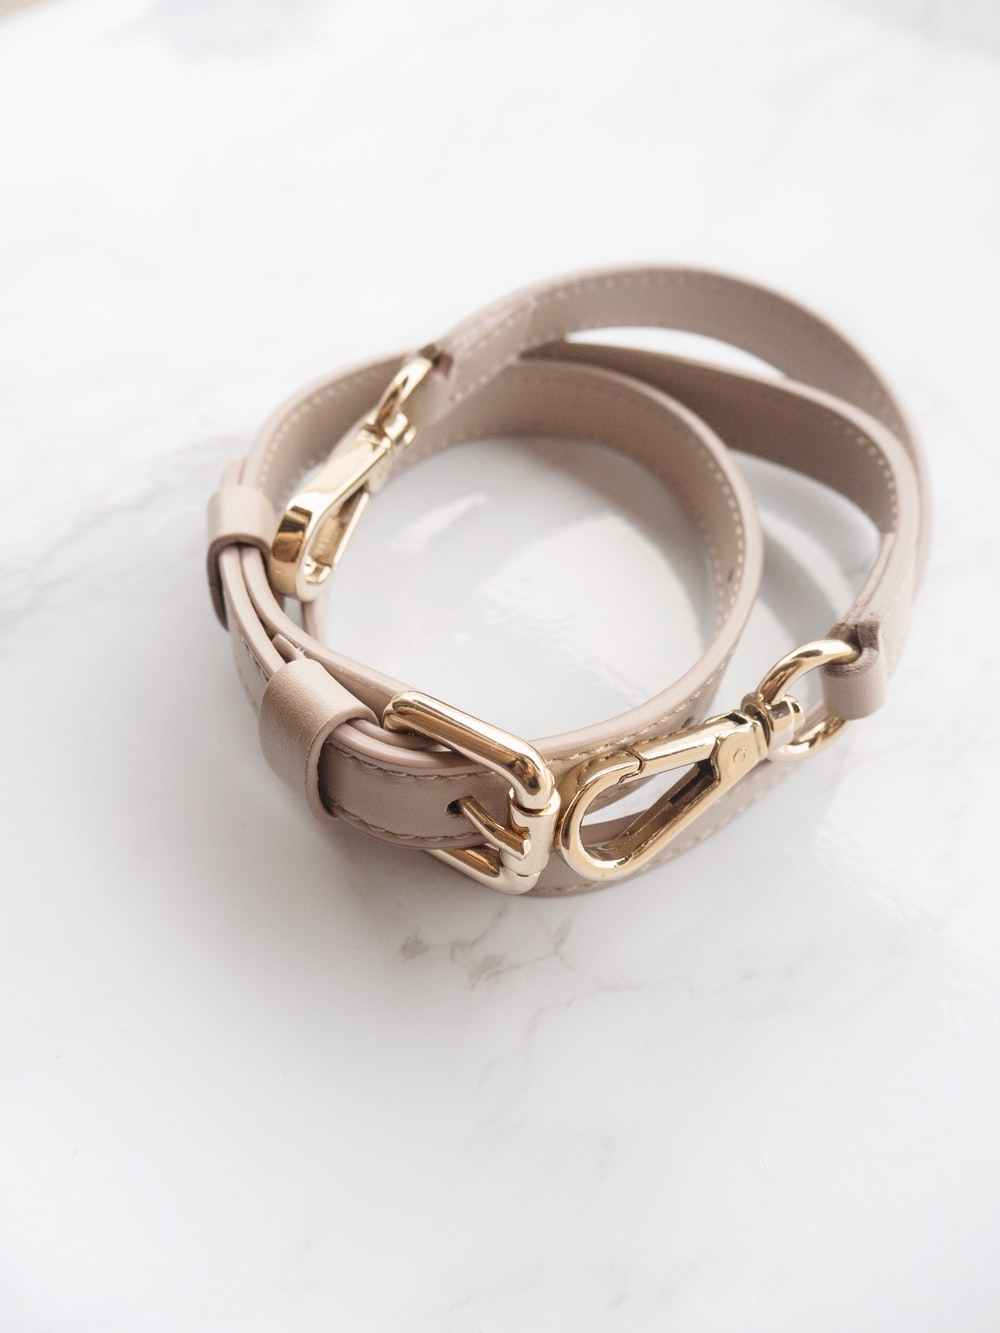 gold and silver bracelet on white surface